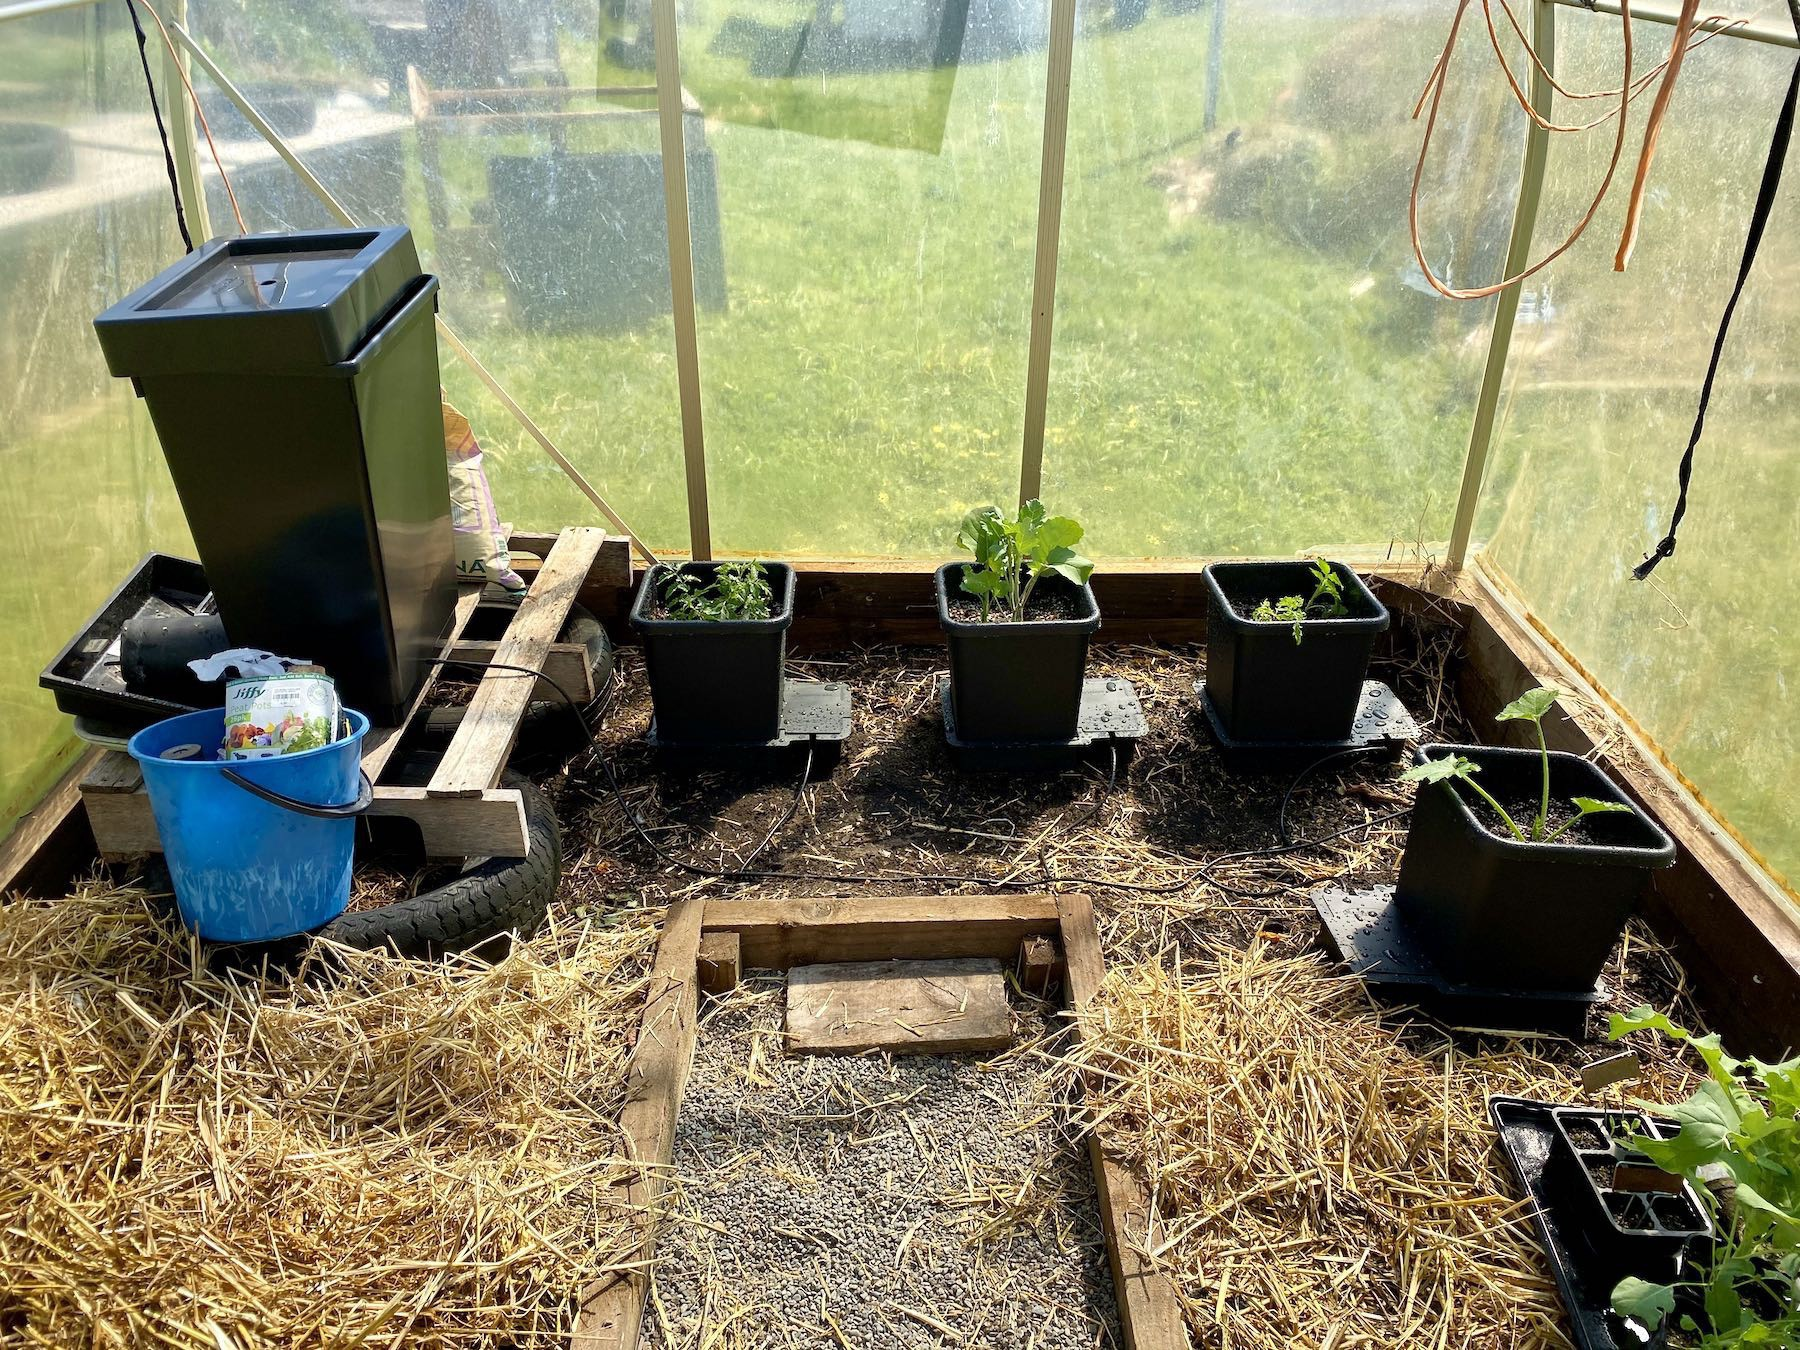 The AutoPot system set up with tomatoes, broccoli and zucchini.